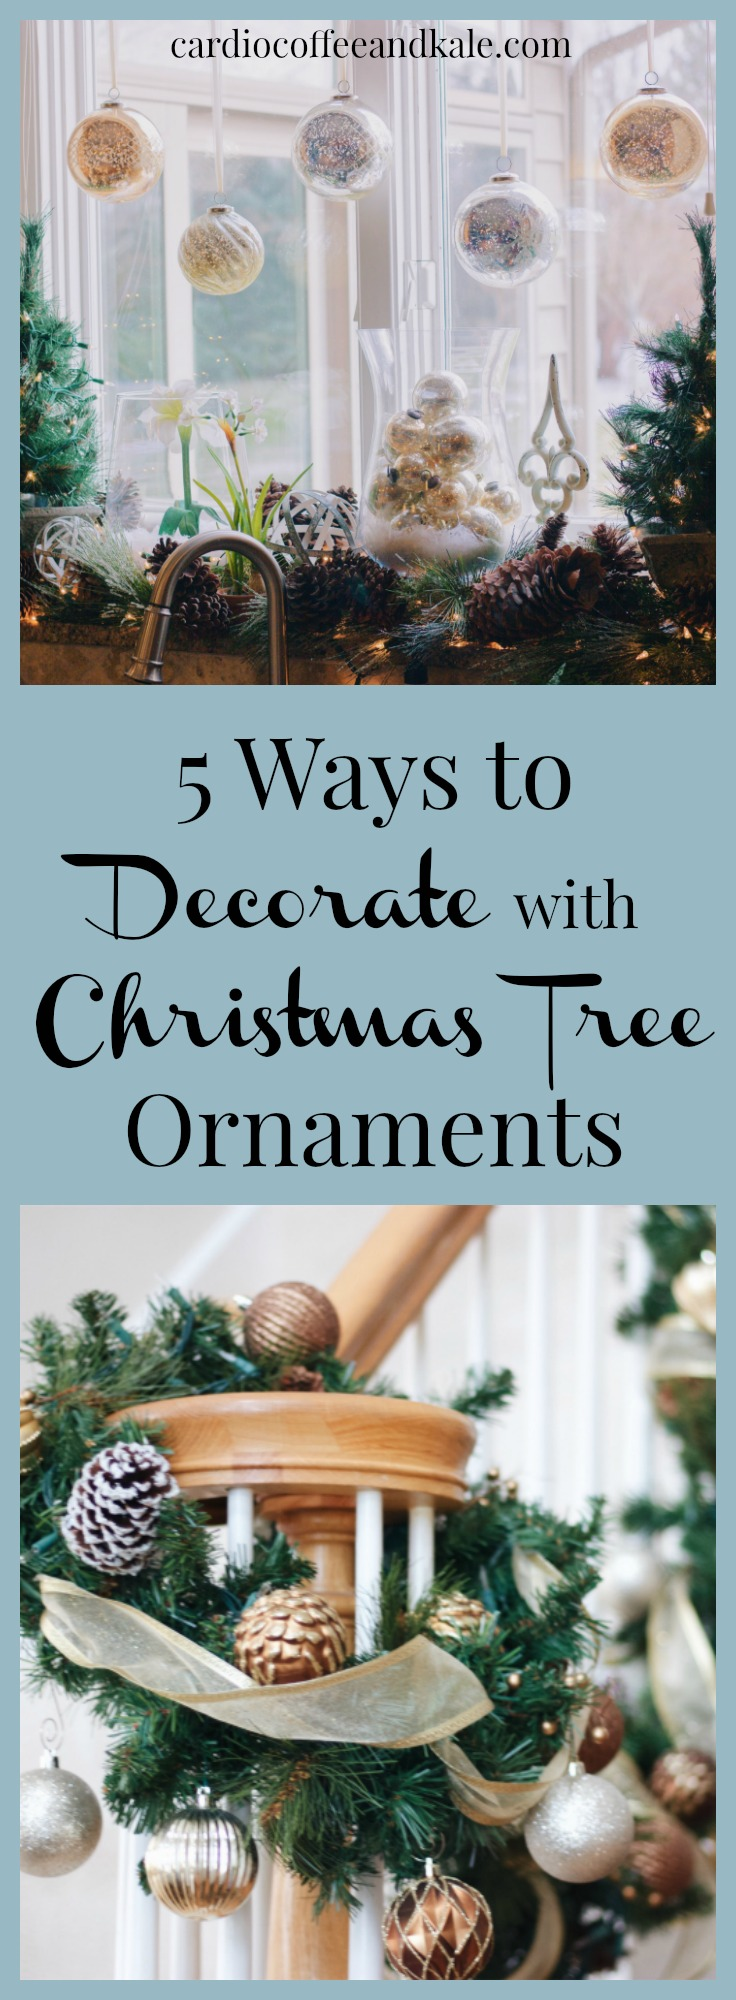 Get Inspired!  Christmas tree ornaments are not just for trees!  Try out these creative ideas for adding a pop of color and sparkle to your holiday decorating.  .jpg